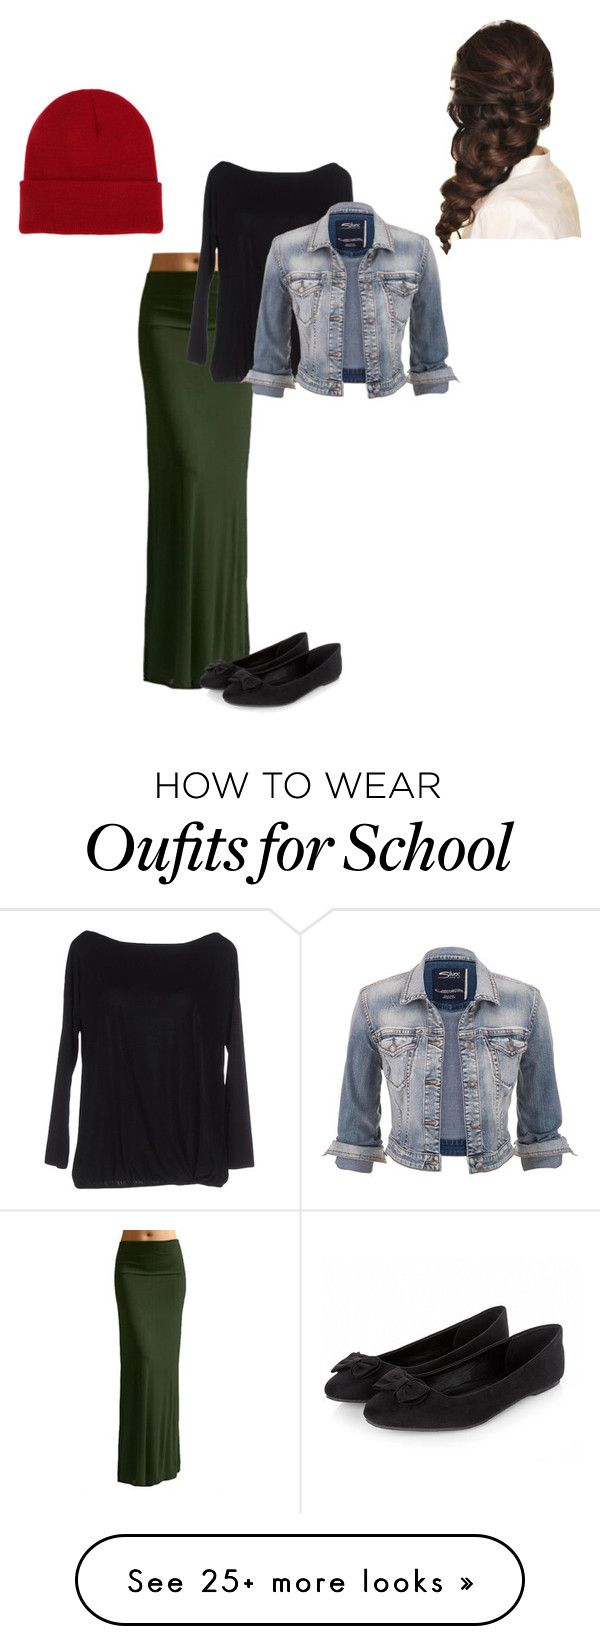 """My outfit for School today!"" by rae1997 on Polyvore featuring HACK, maurices, NLY Accessories and Disney"